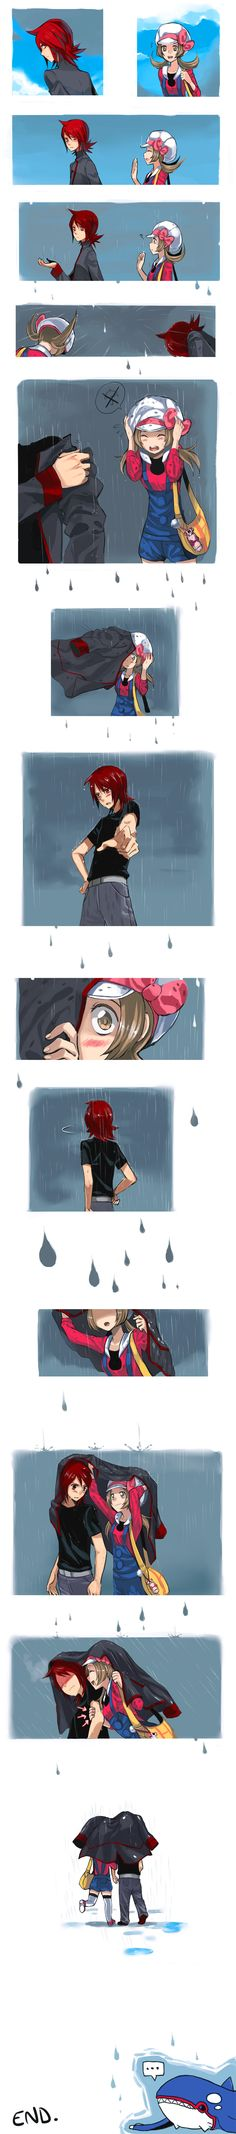 Rainy Day by Cezaria.deviantart.com on @deviantART